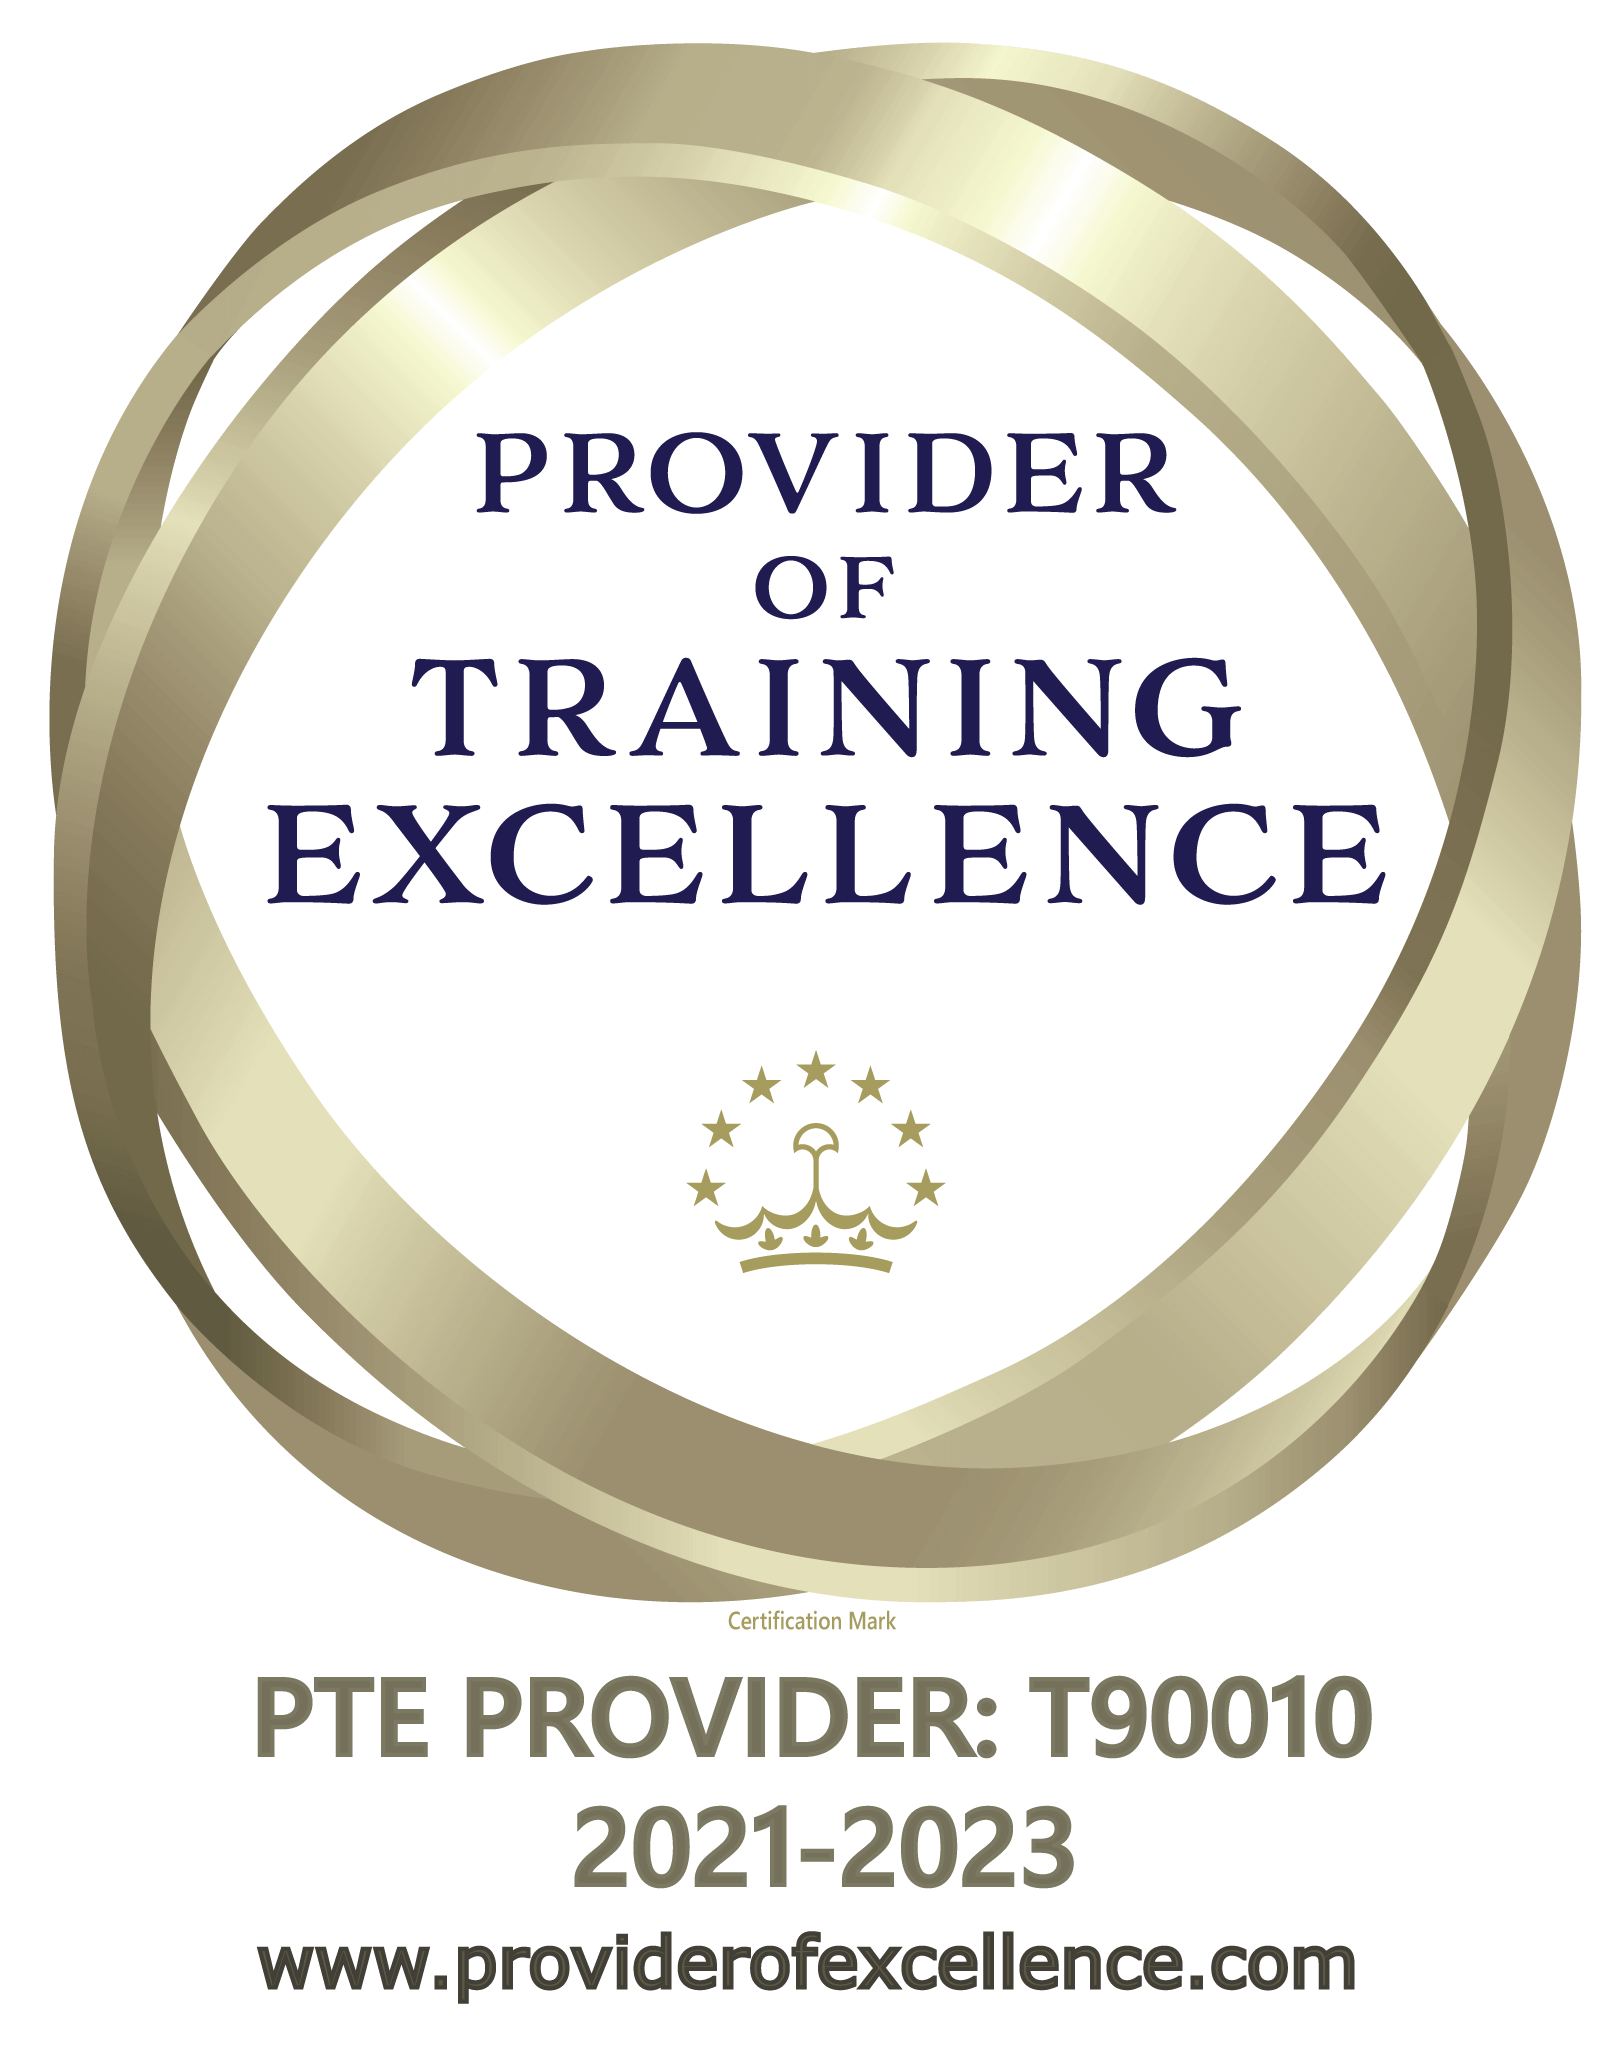 Provider of Training Excellence logo